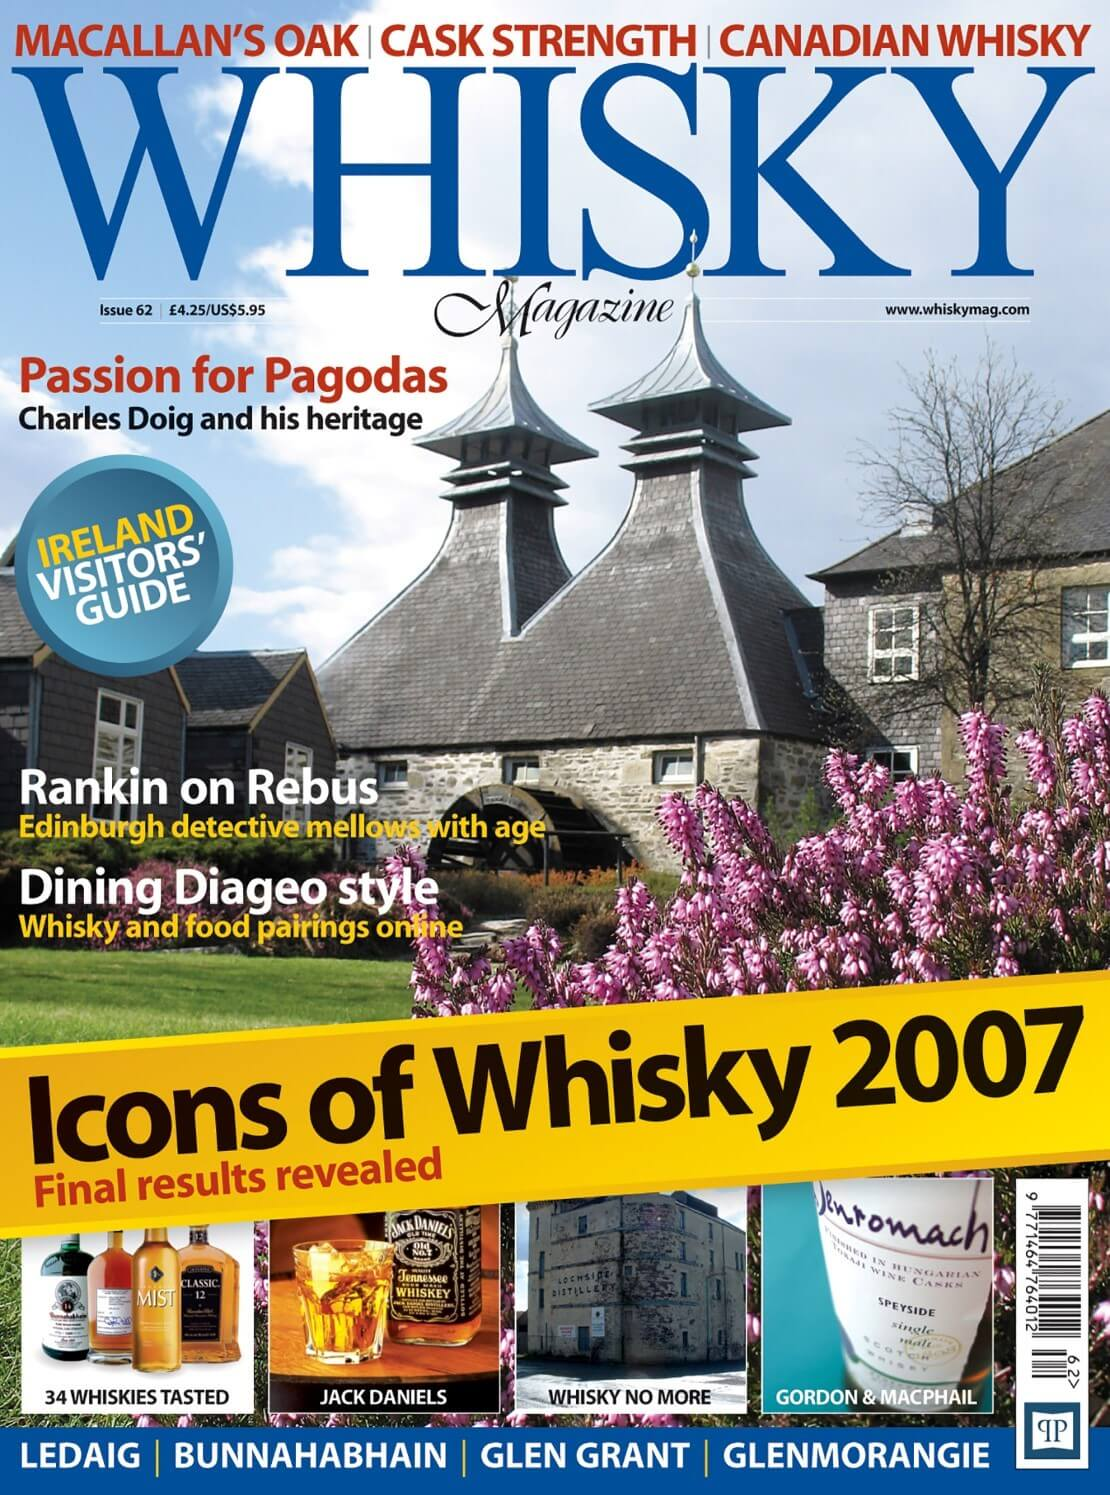 Macallan Oak Cask Strength Canadian Whisky Pagodas Rankin on Rebus Icons of Whisky 2007